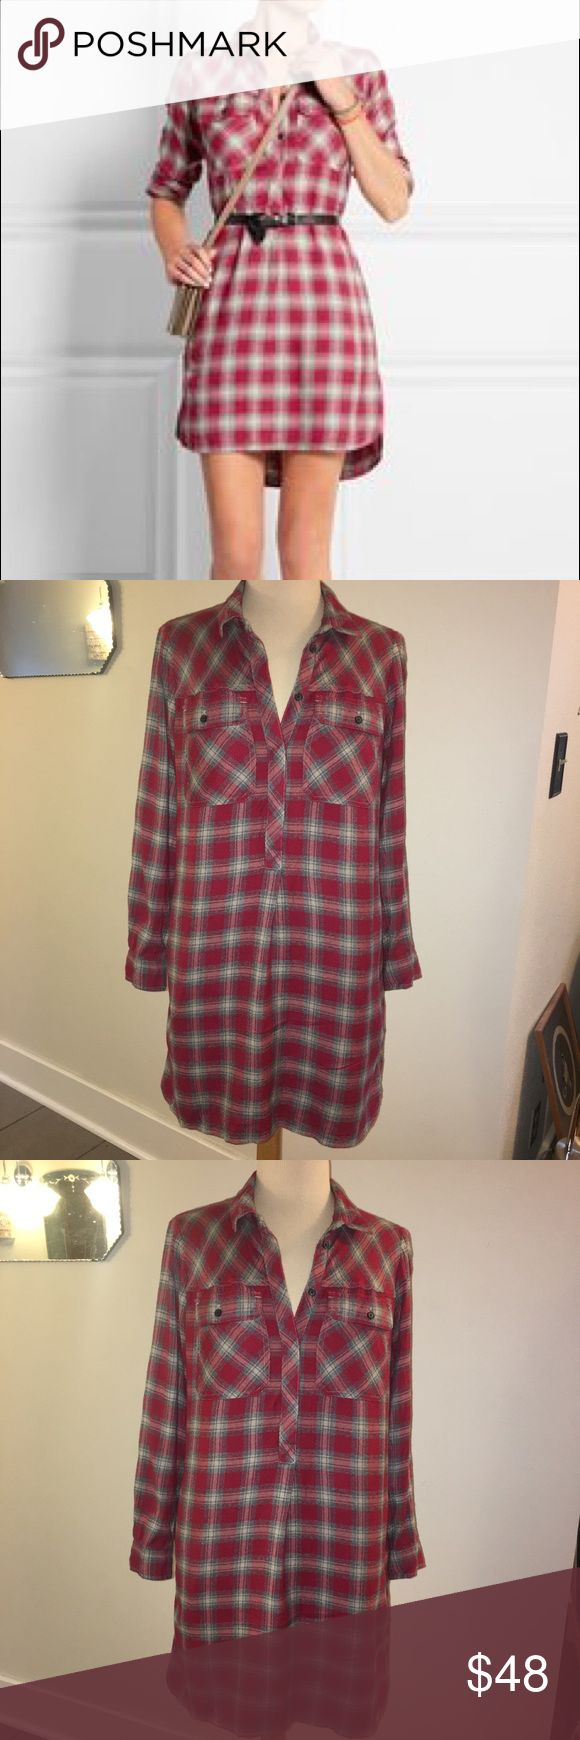 """Madewell Red Flannel Shirt Dress Size XS Madewell red flannel shirt dress in size XS. Super cozy dress features side pockets and is in excellent condition. Can be worn loose for a comfy fit or worn with a belt. L 35"""" Sleeve 23"""" Chest across 18"""" Waist across 20"""" Madewell Dresses"""